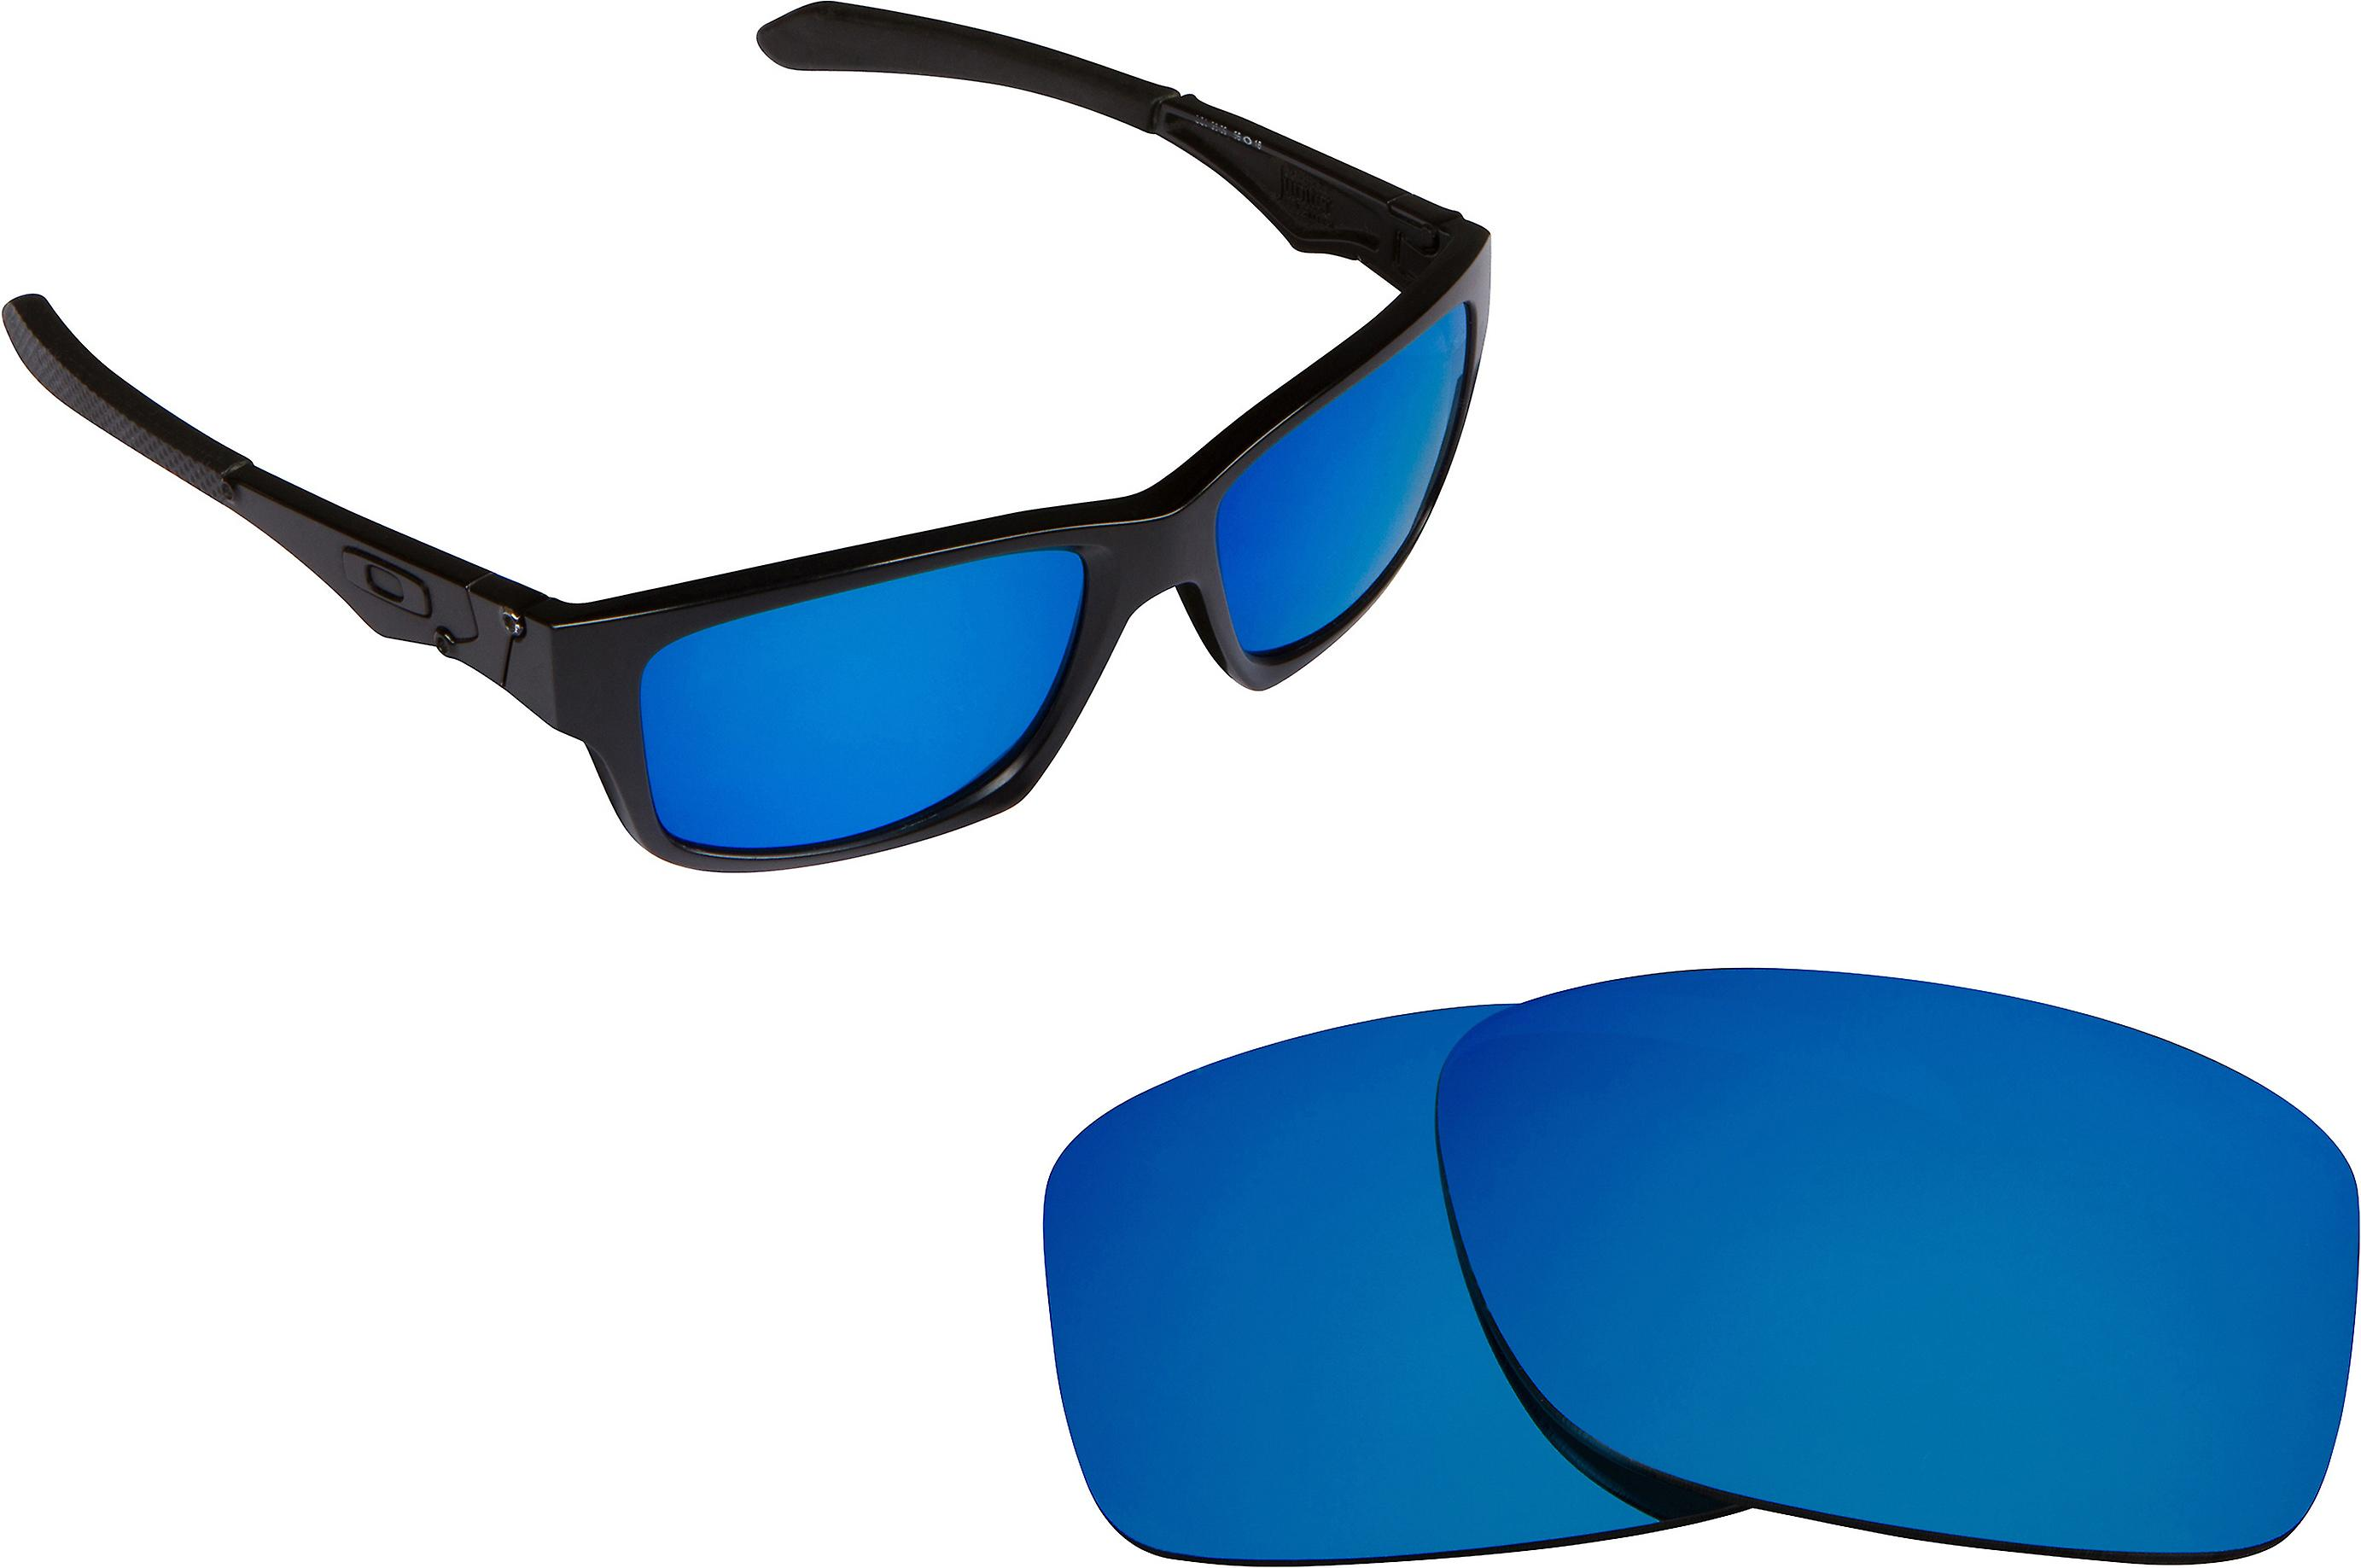 44c5641a80 JUPITER SQUARED Replacement Lenses Polarized Blue by SEEK fits OAKLEY  Sunglasses